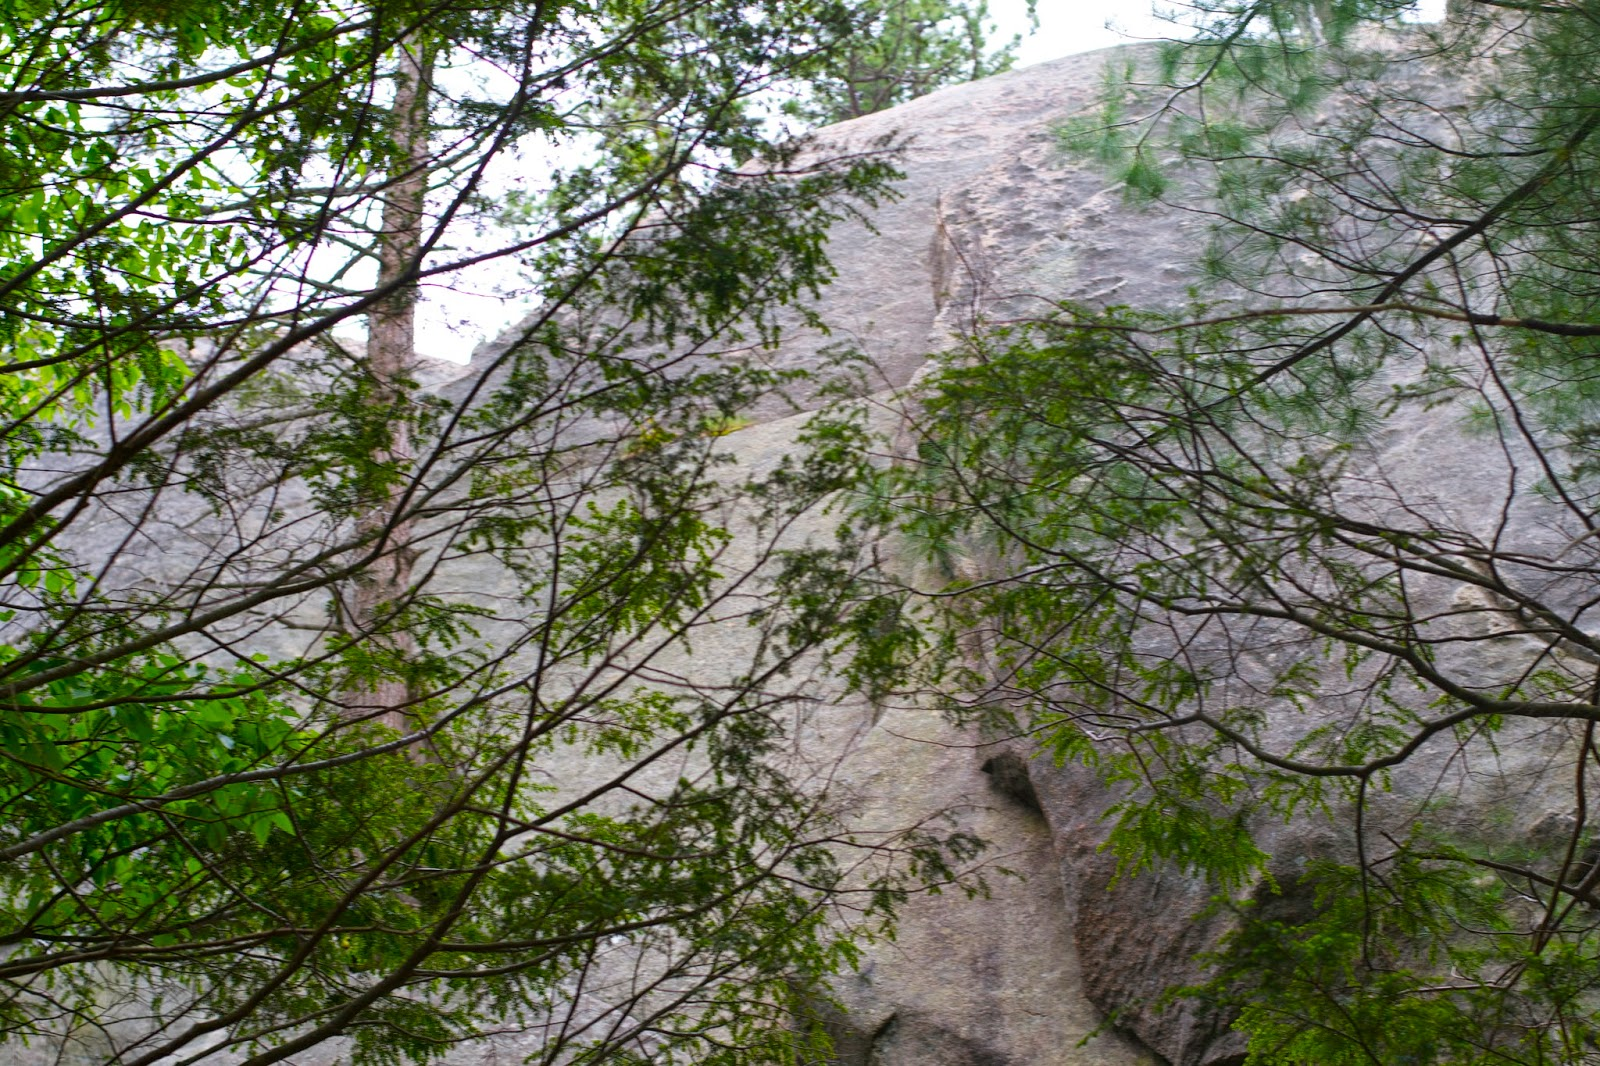 Looking up towards the top, one of the rock ridges.